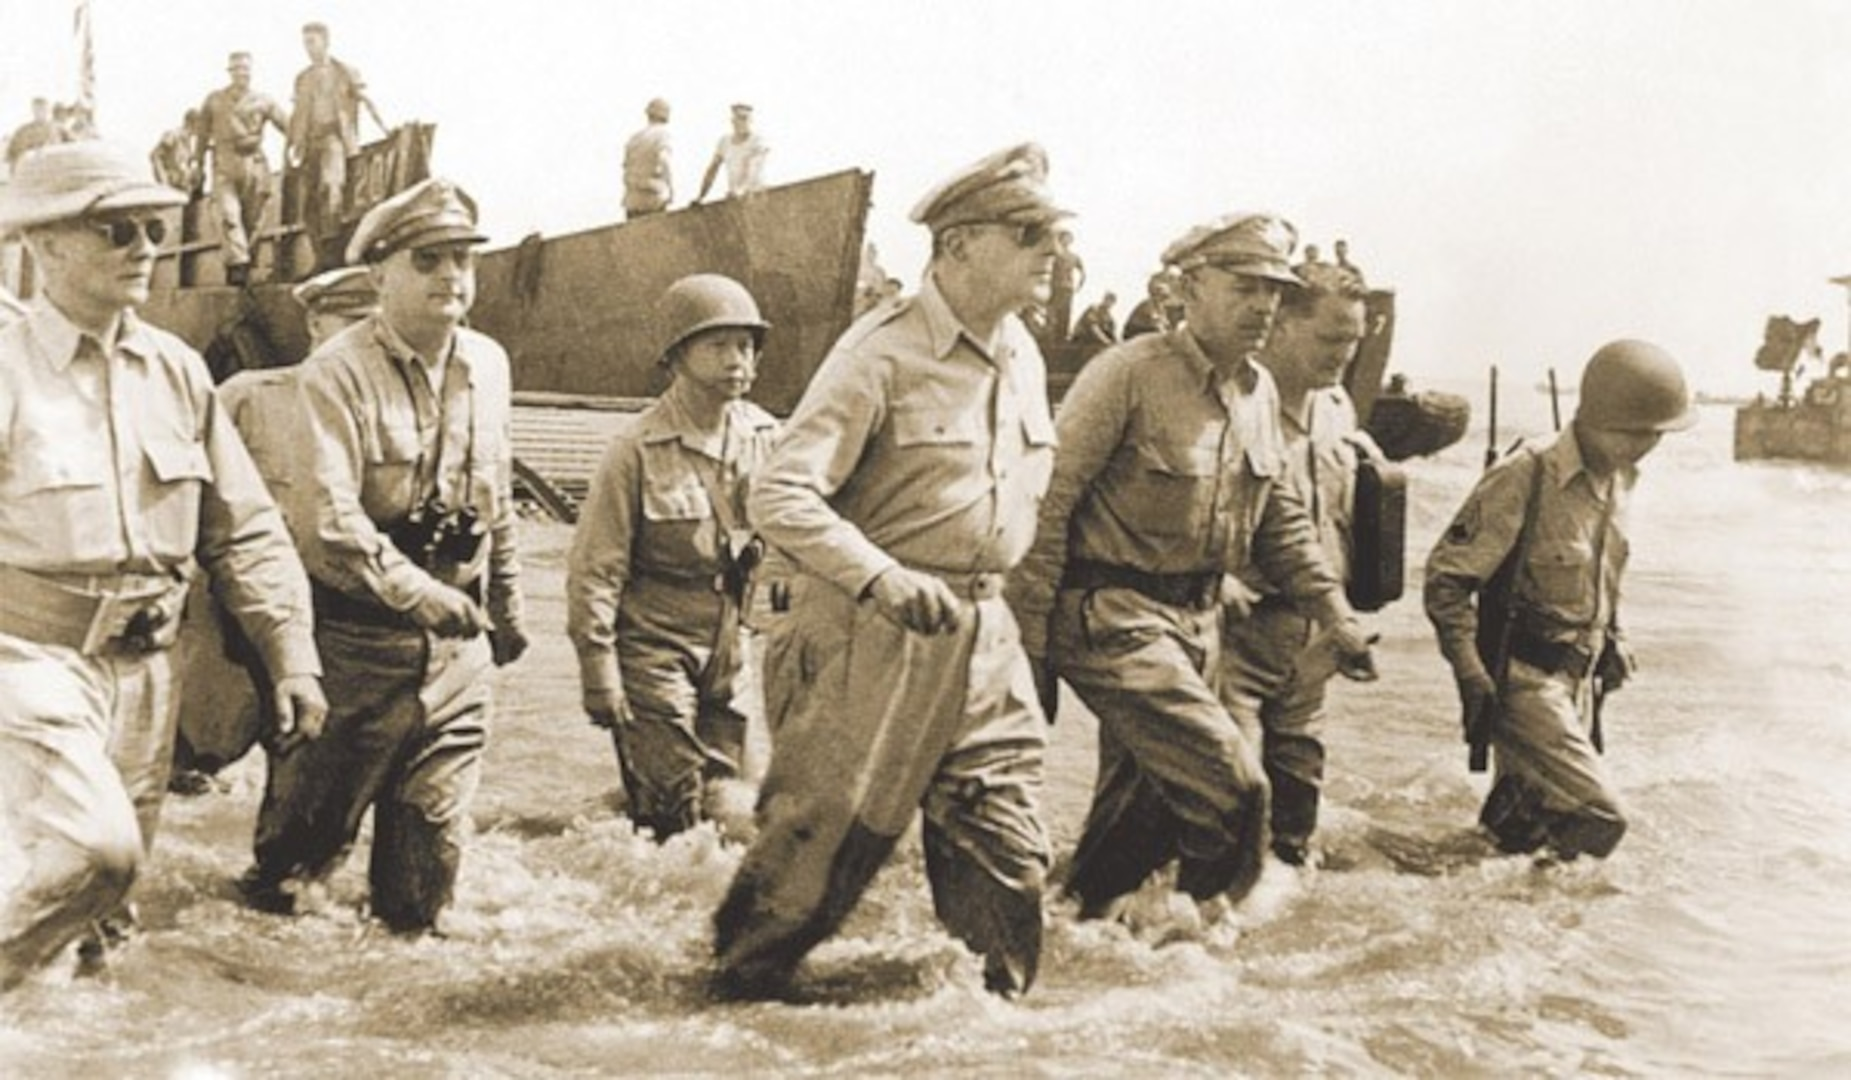 U.S. Forces Began Main Battle for Philippines 75 Years Ago